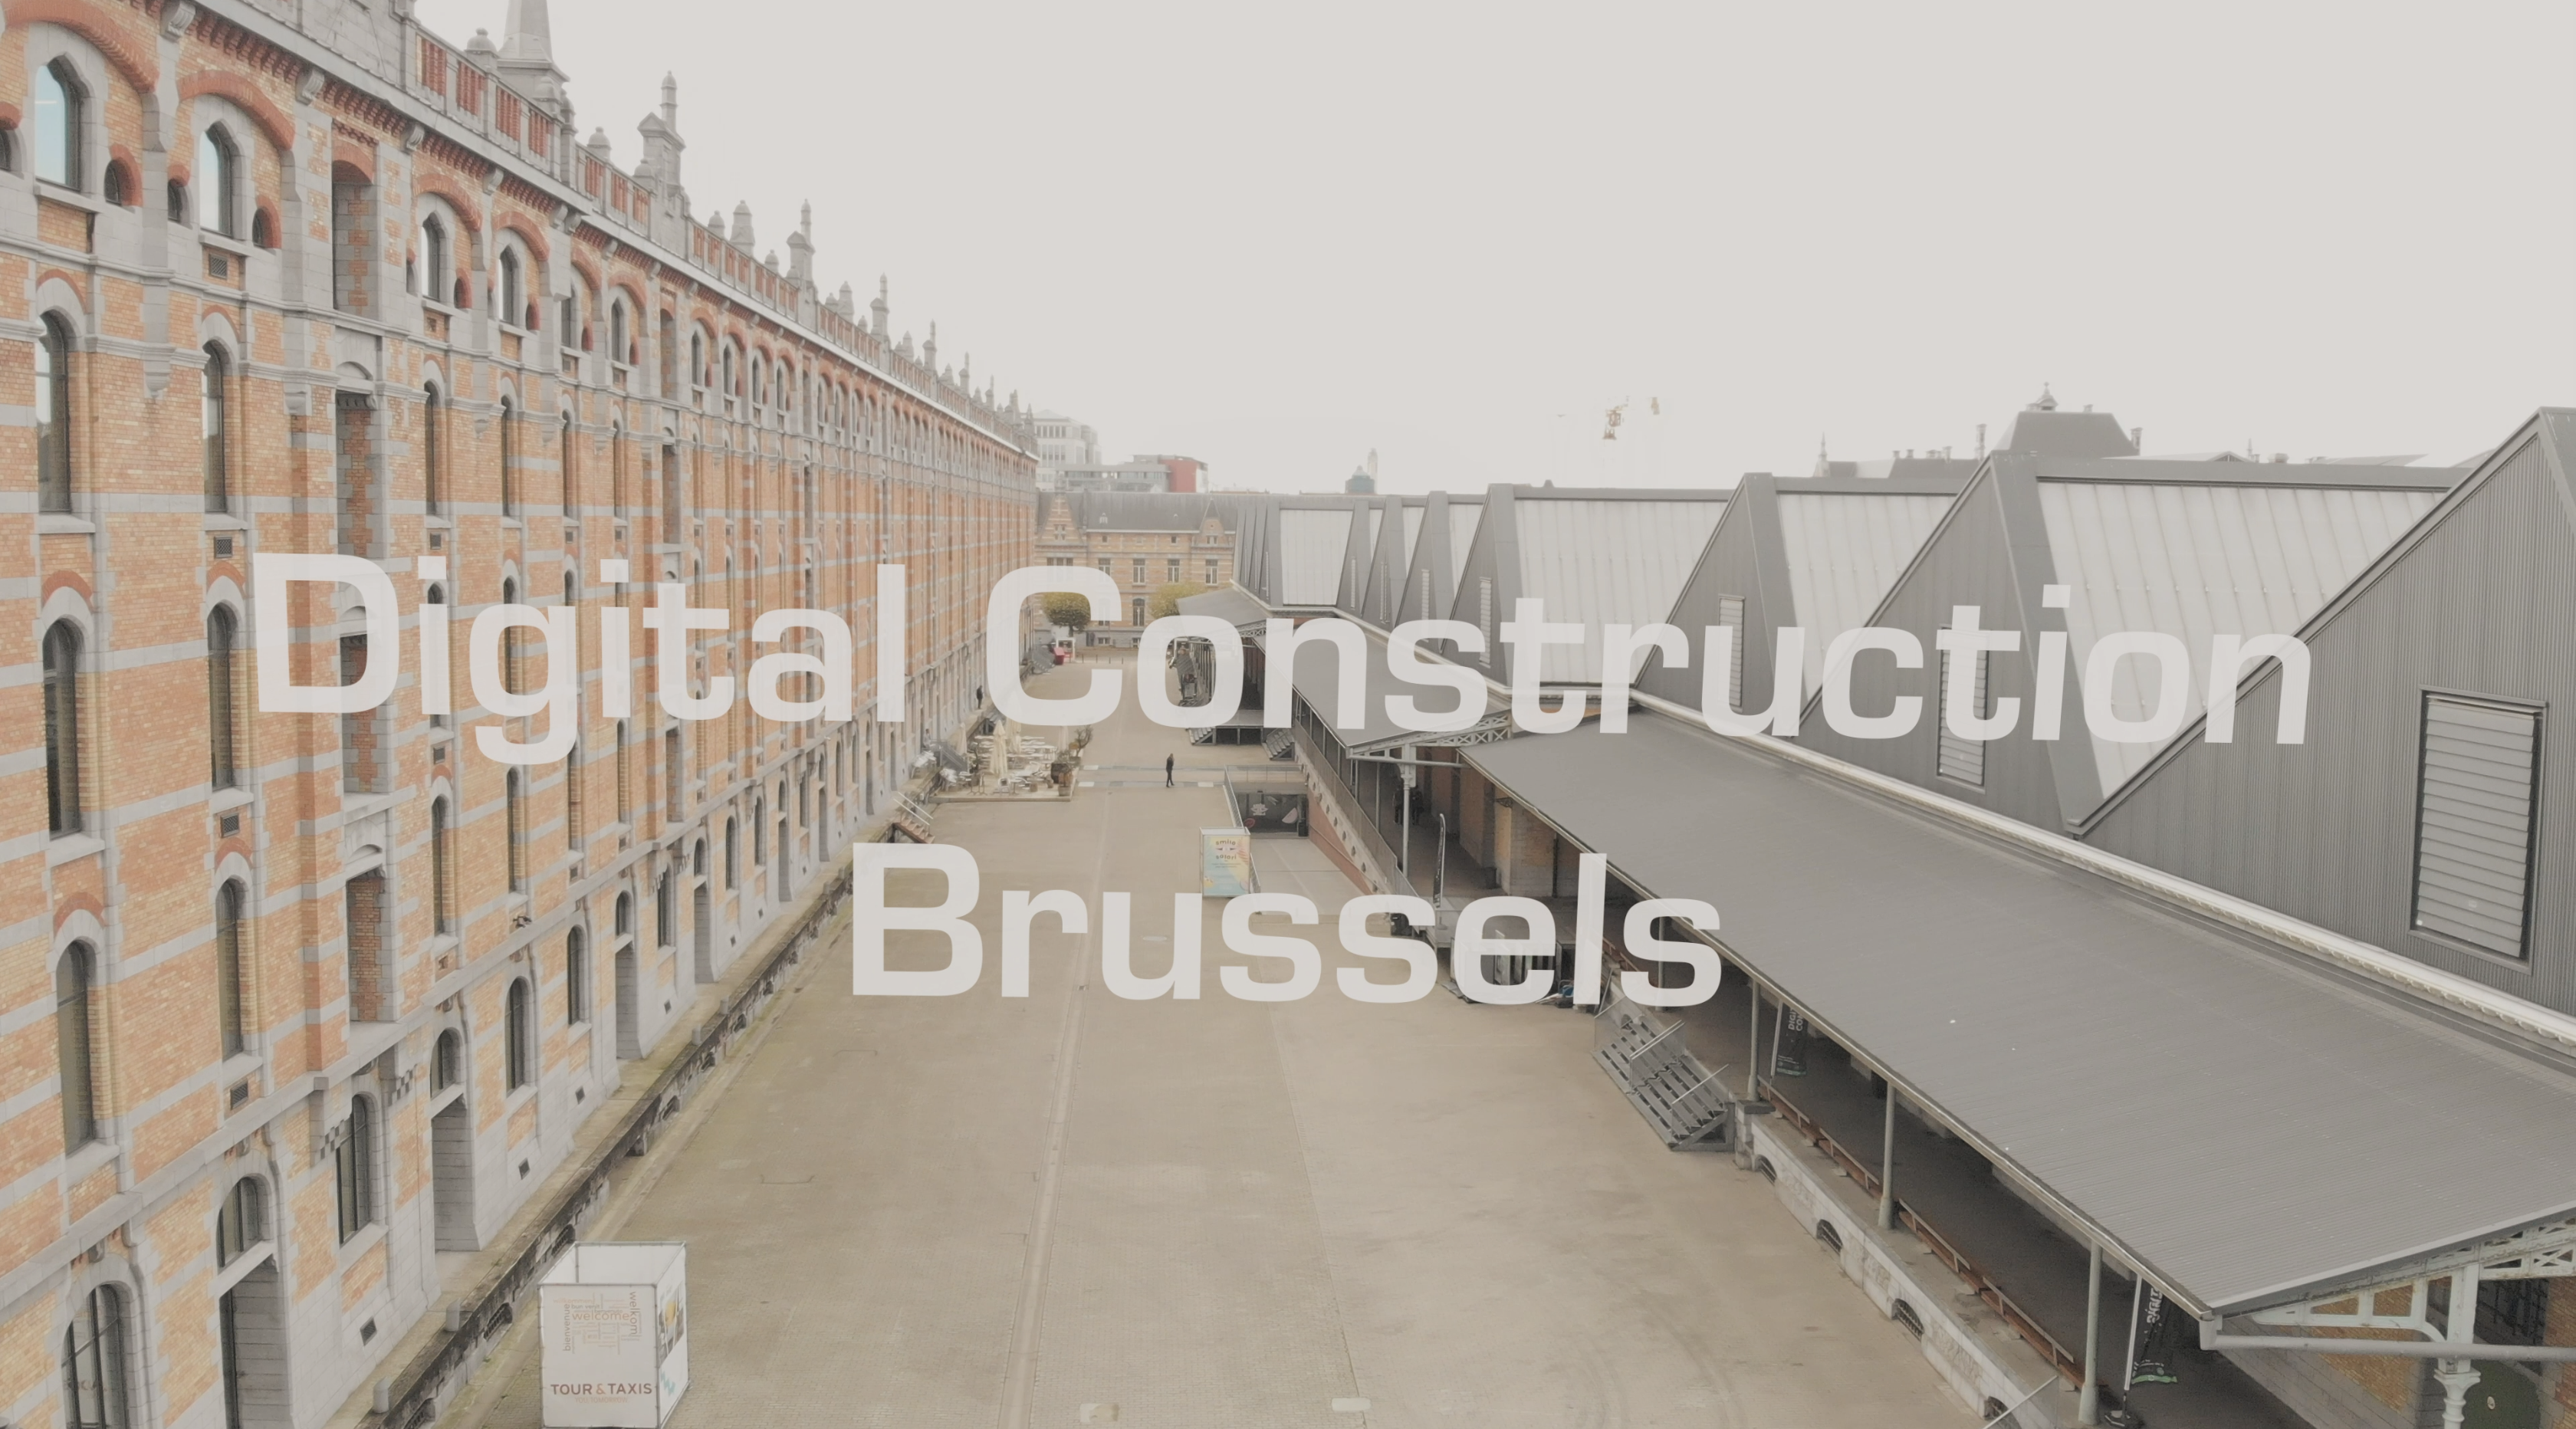 Digital Construction Pro4all